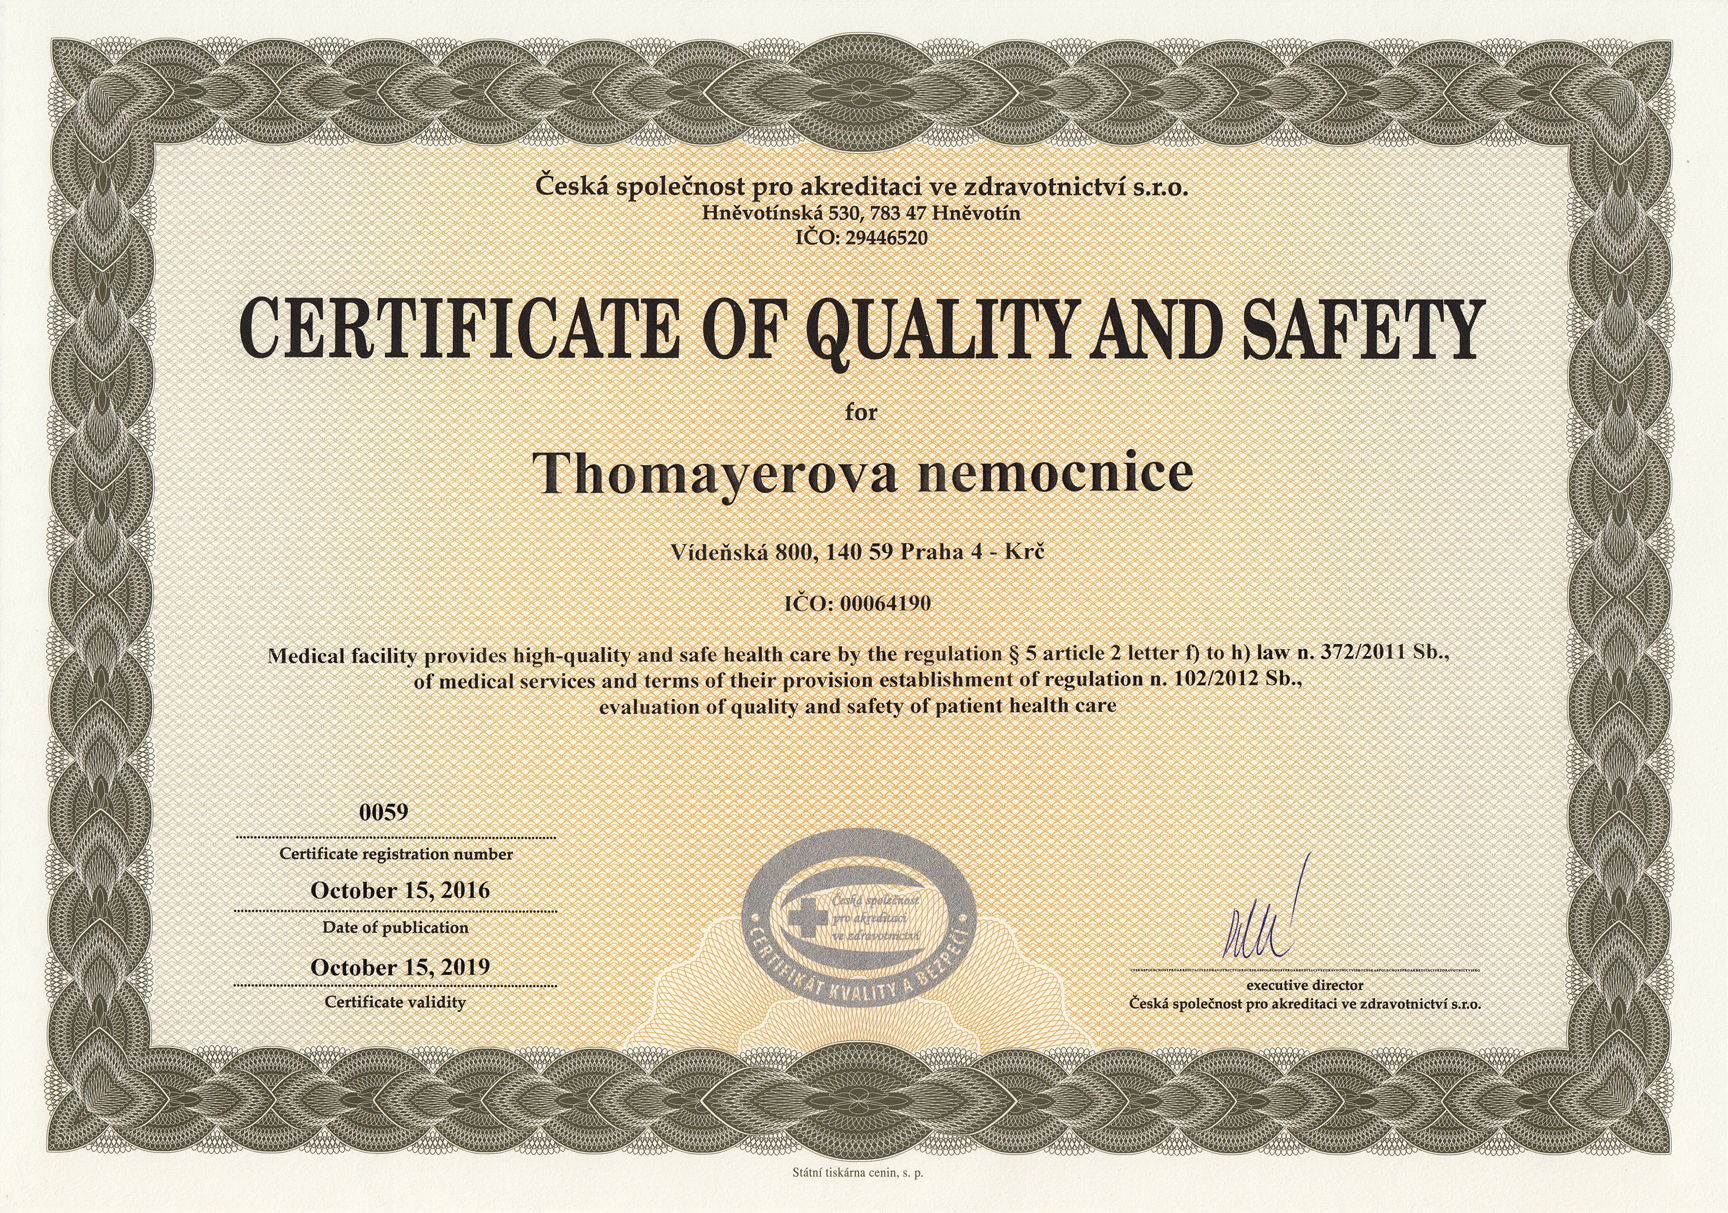 certificate of quality and safety